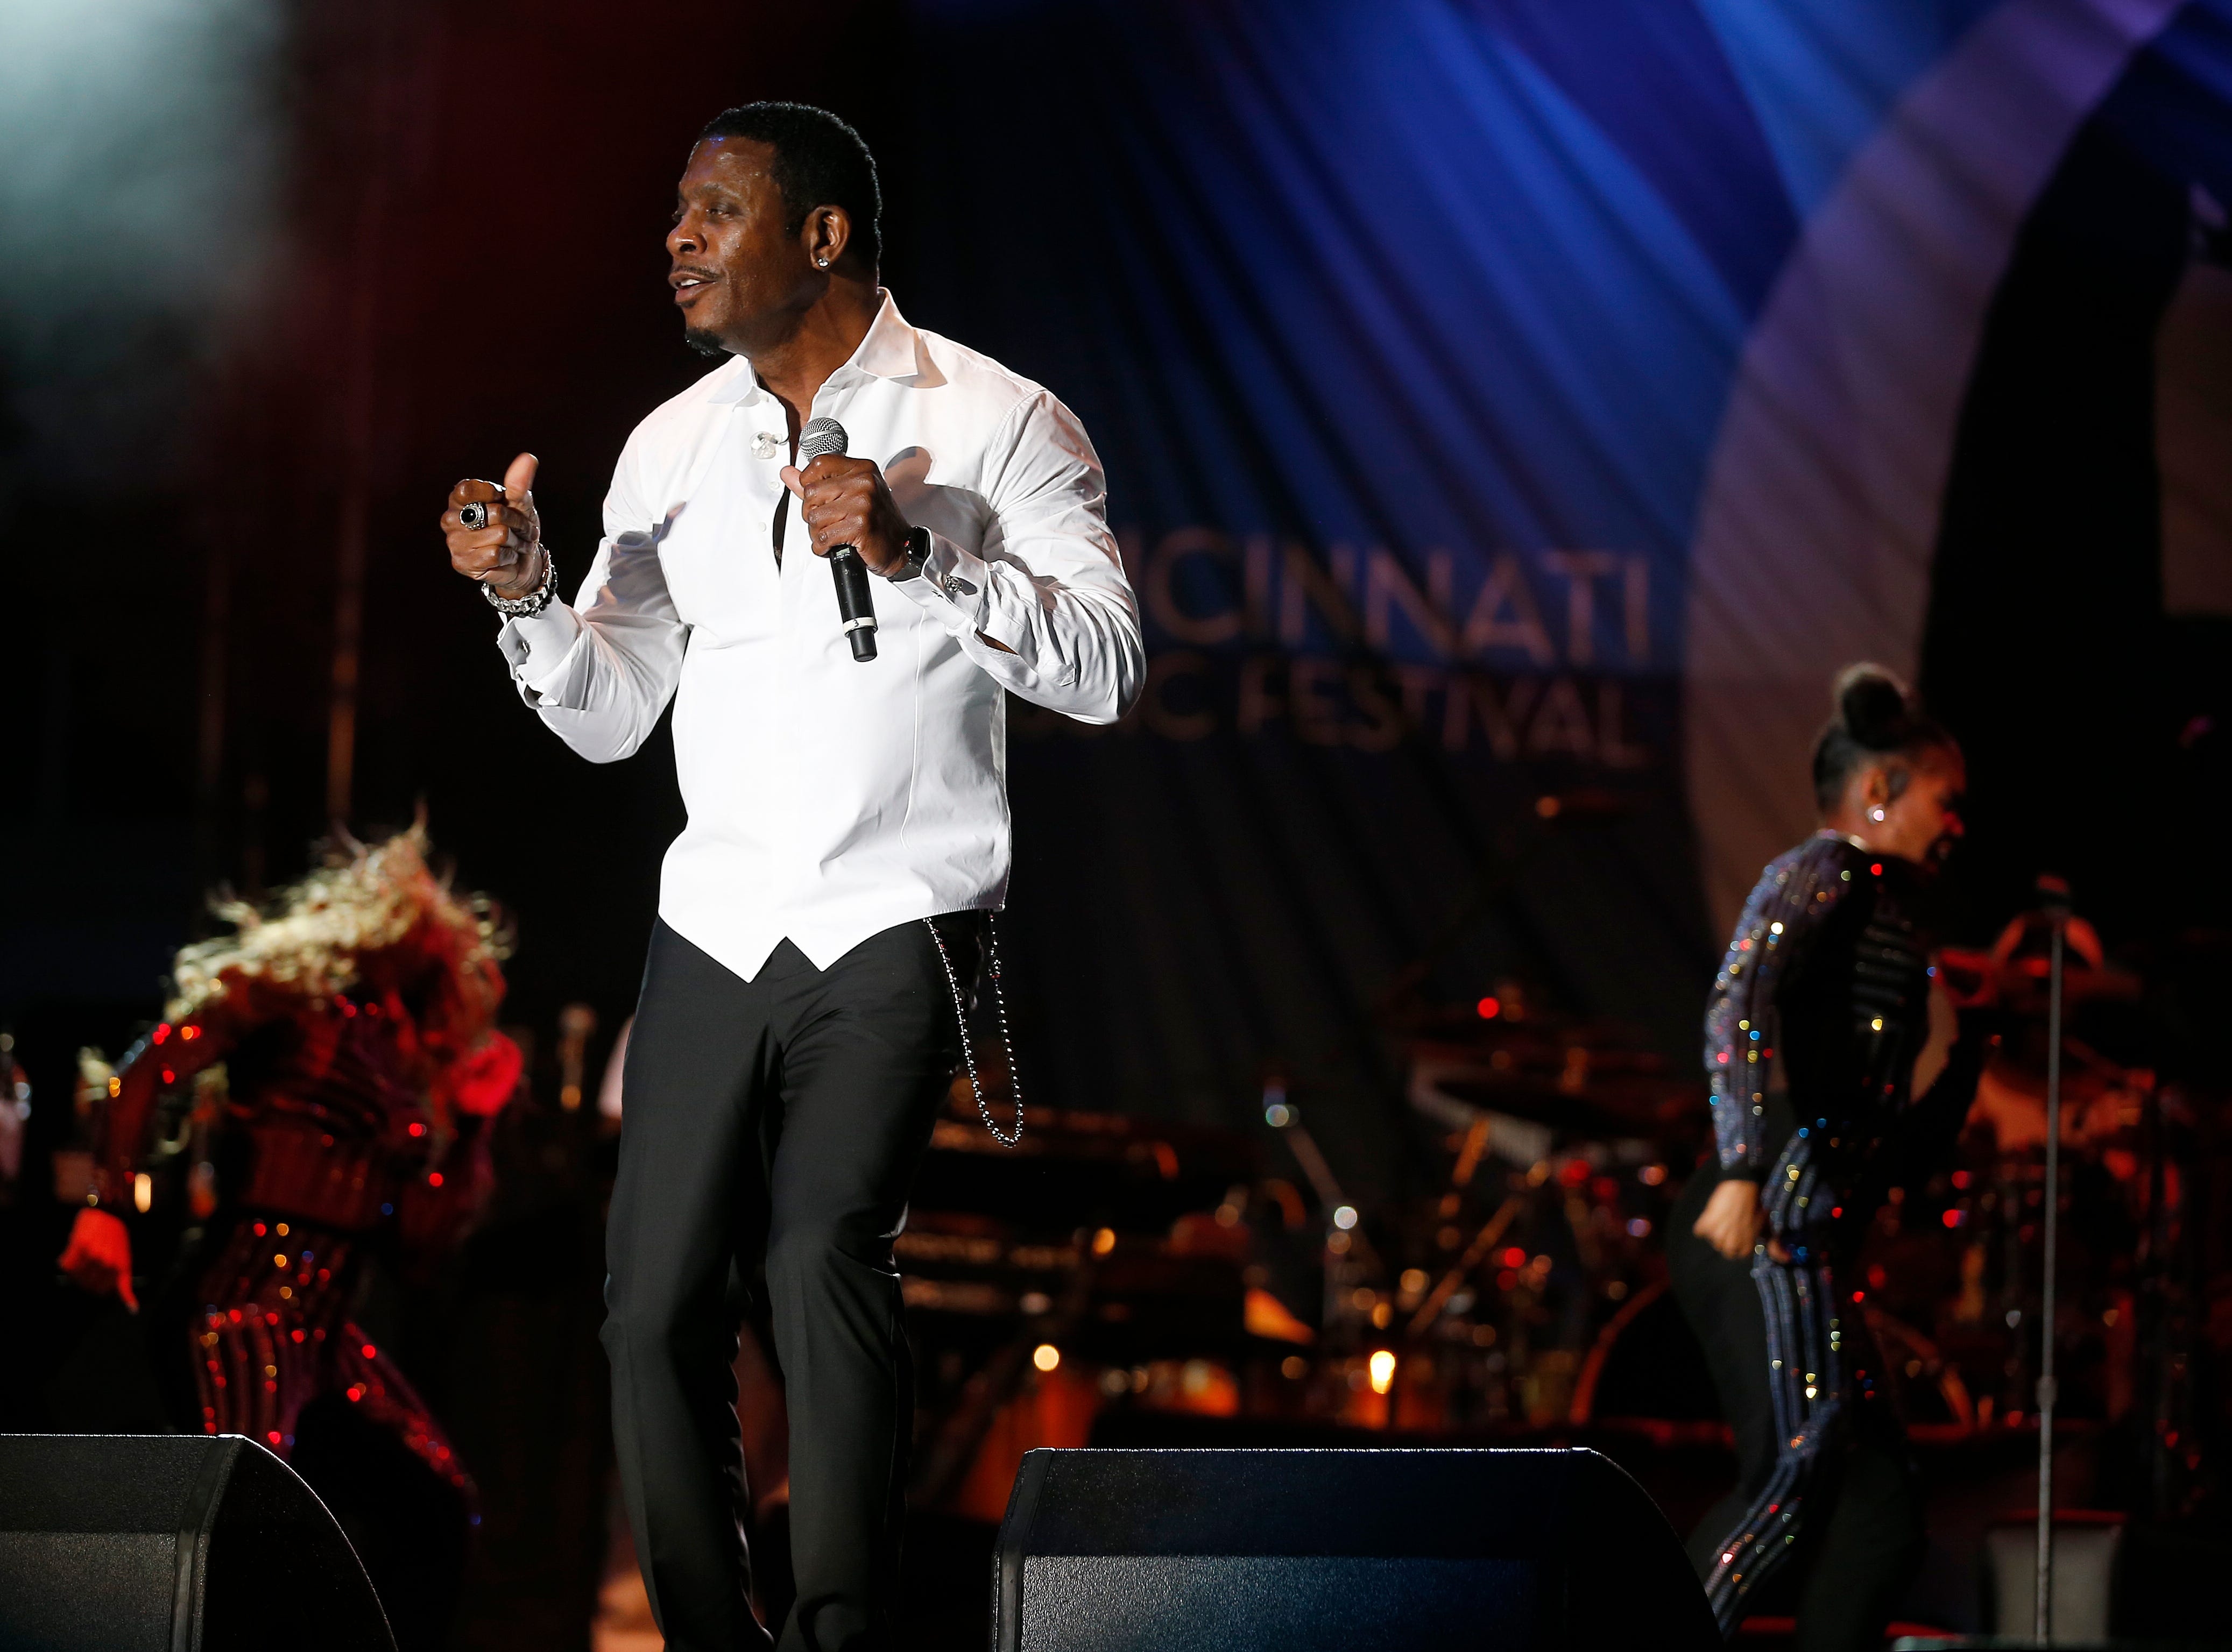 Keith Sweat entertains the crowd.